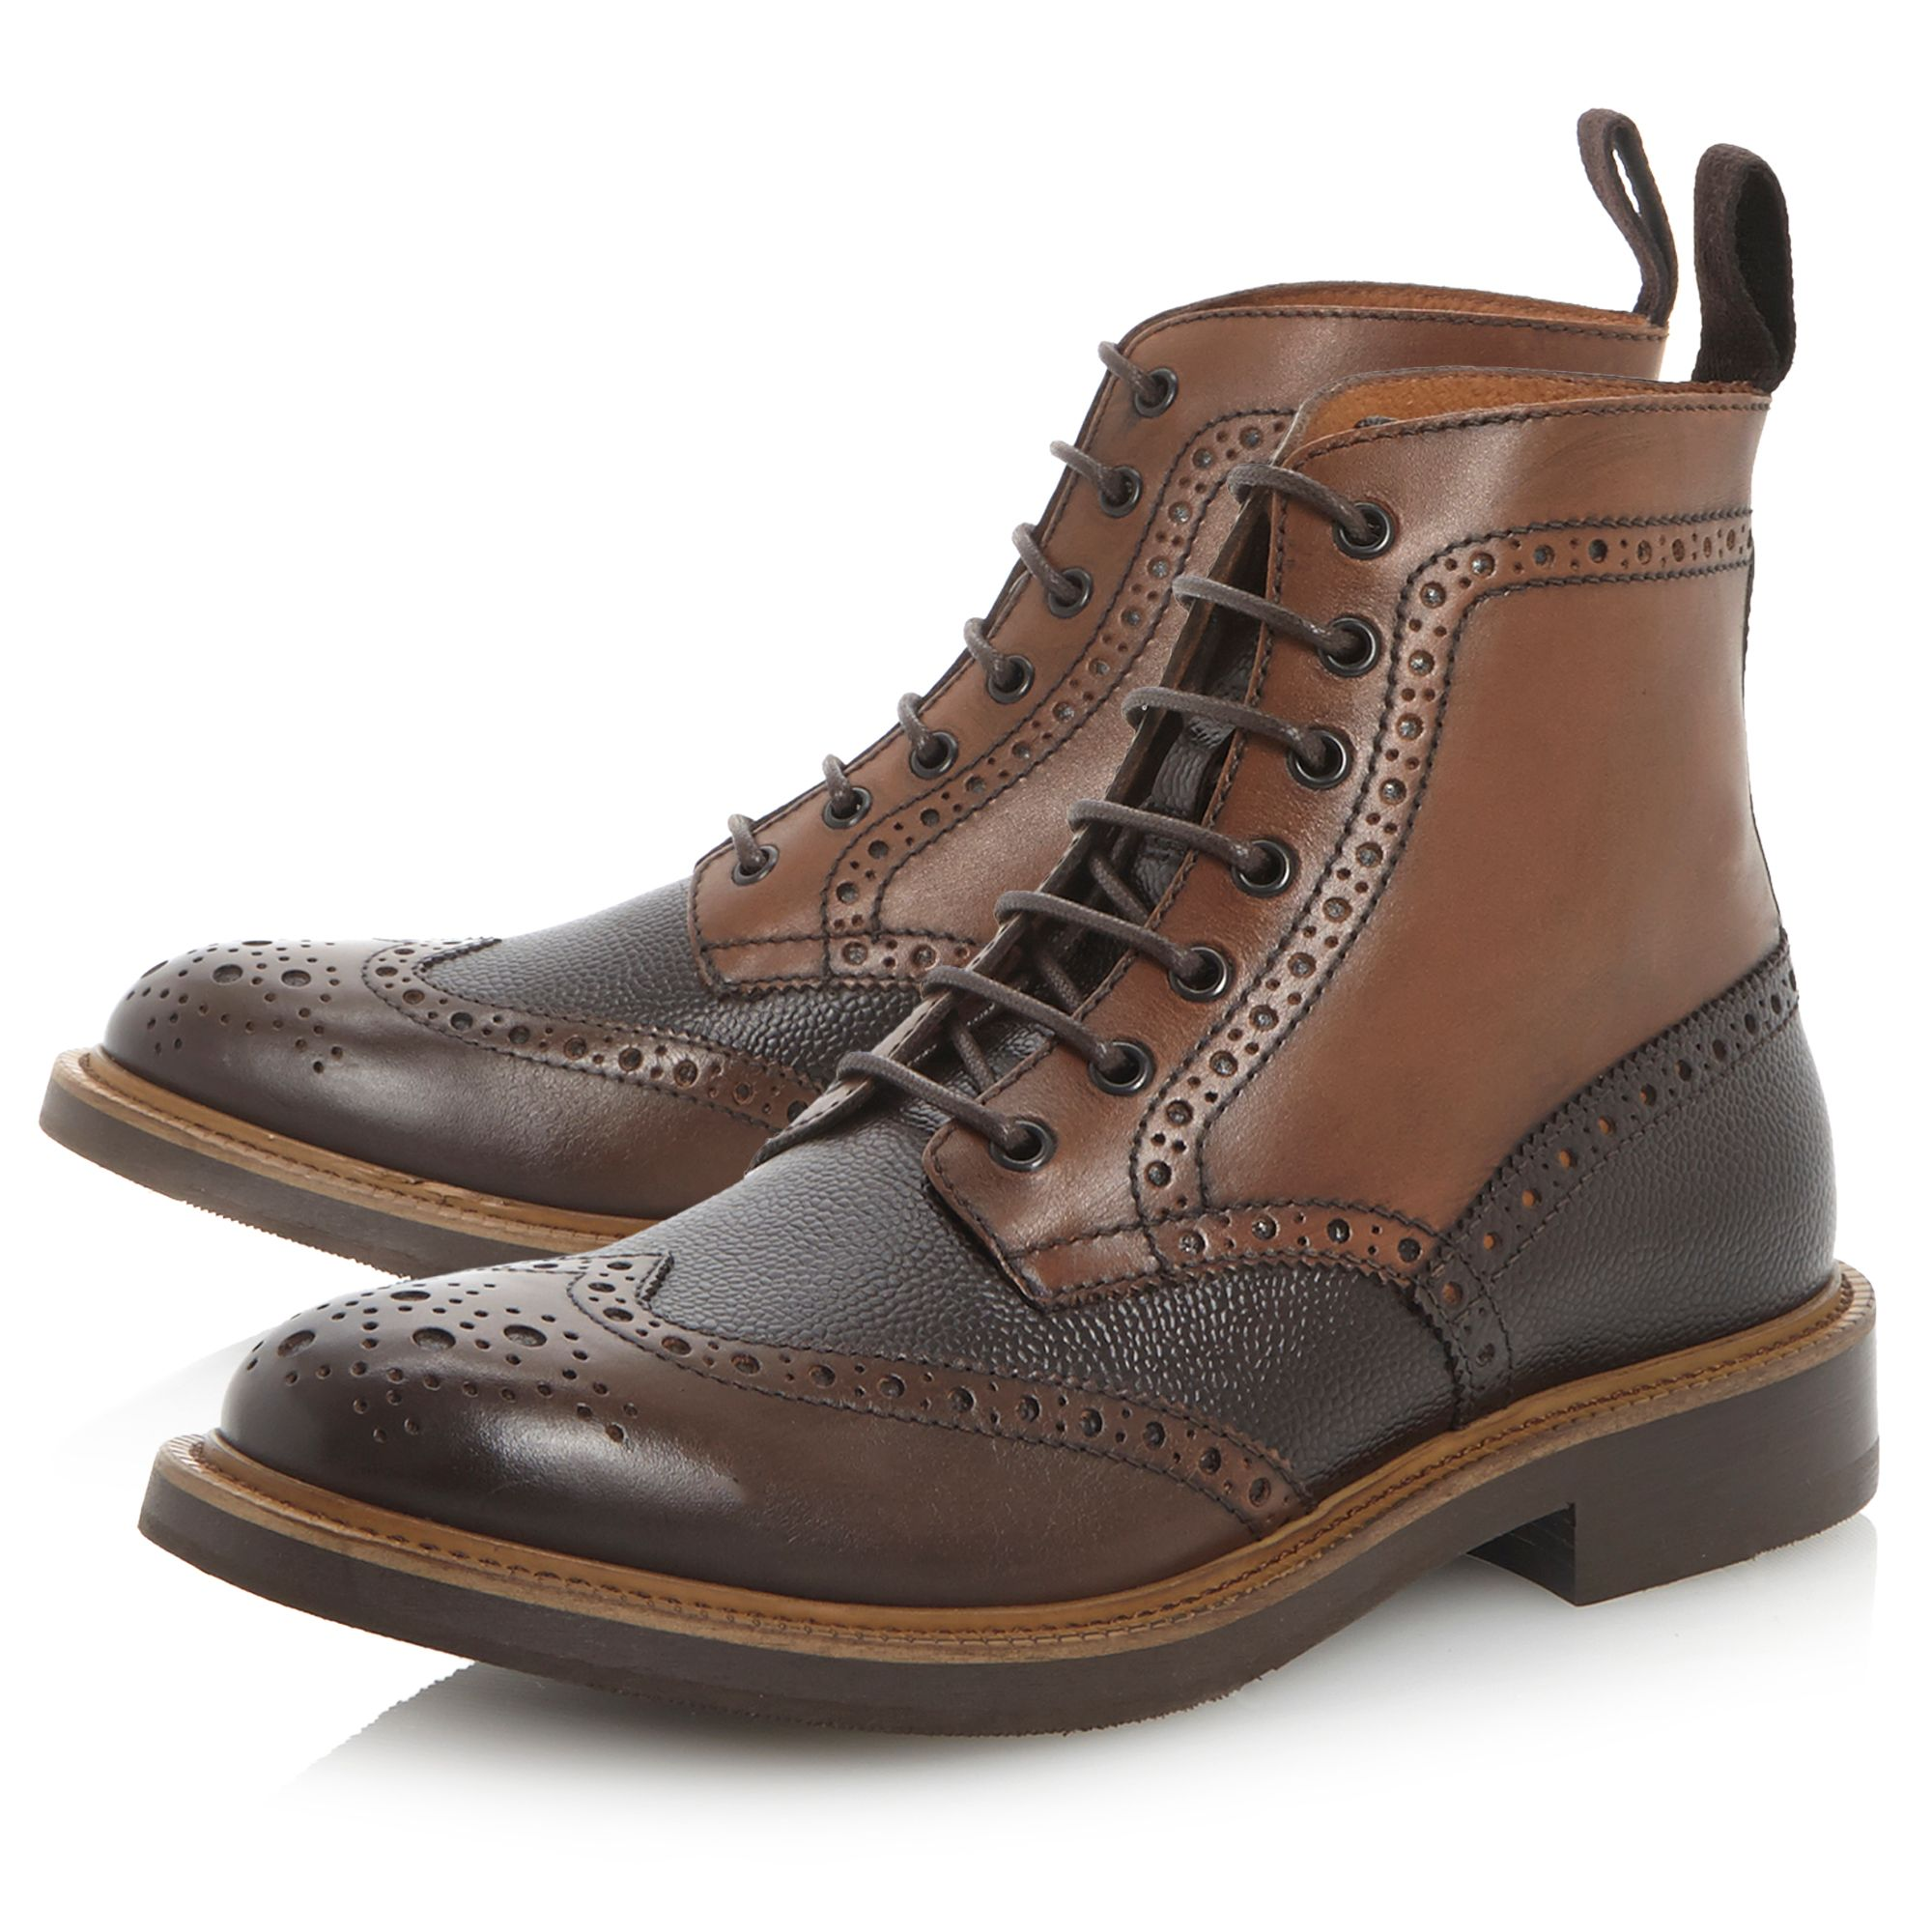 Canterbury heavy brogue lace up boot